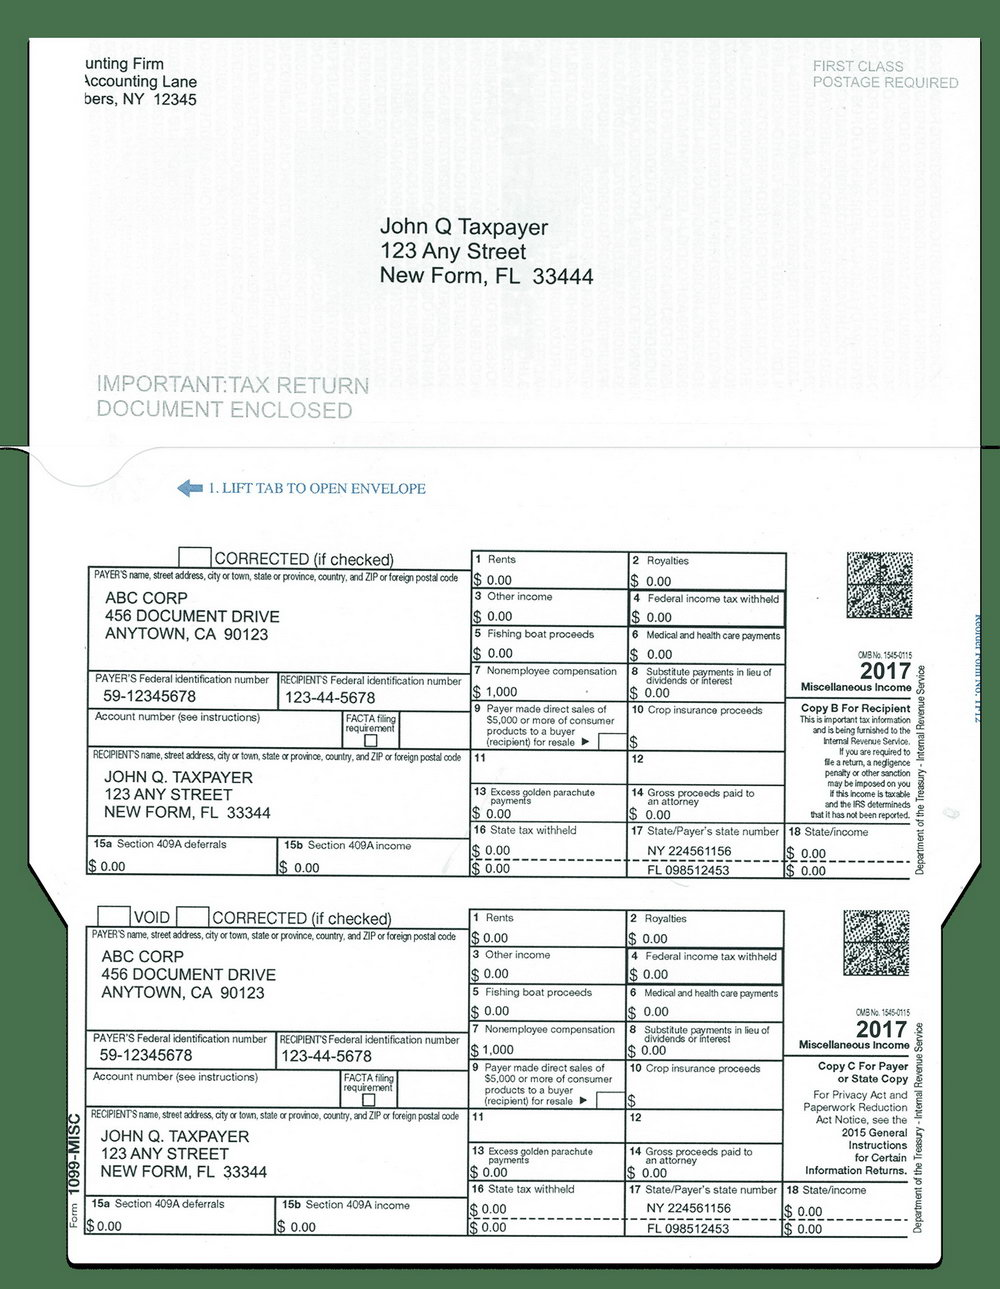 Form 1099 Misc Instructions